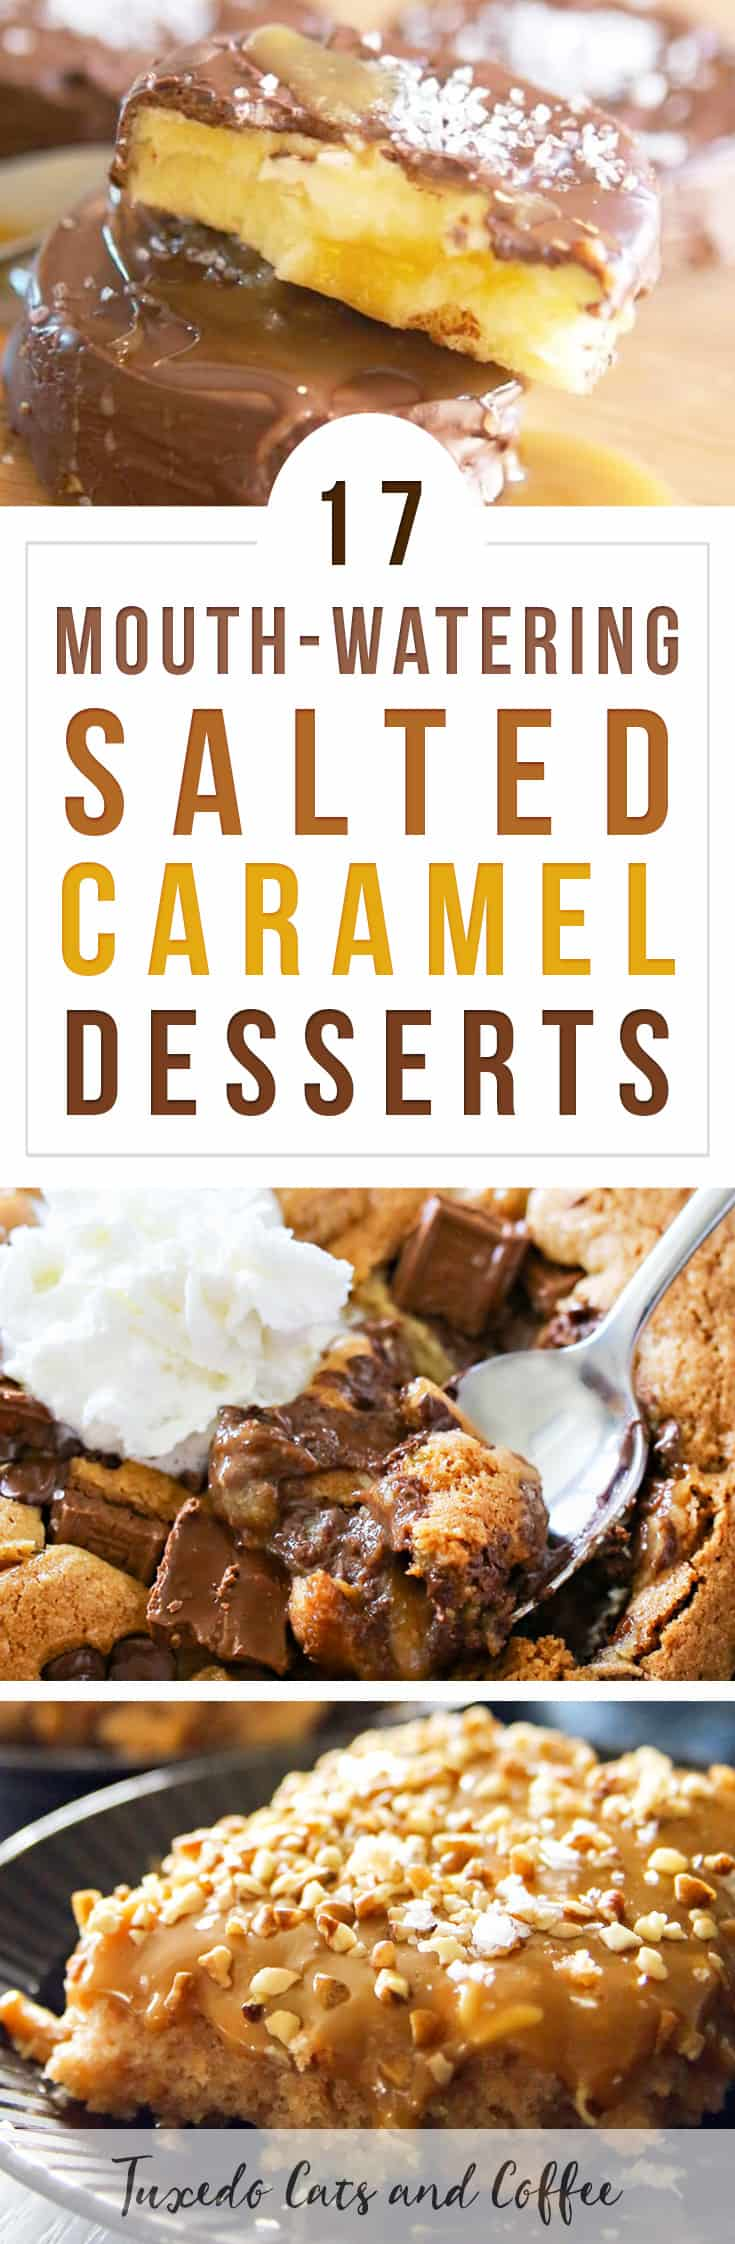 I LOVE salted caramel flavored everything! In fact, right now I'm drinking coffee with salted caramel mocha creamer. Delish! Here are 17 mouth-watering salted caramel desserts that will have you running to the kitchen to get baking.